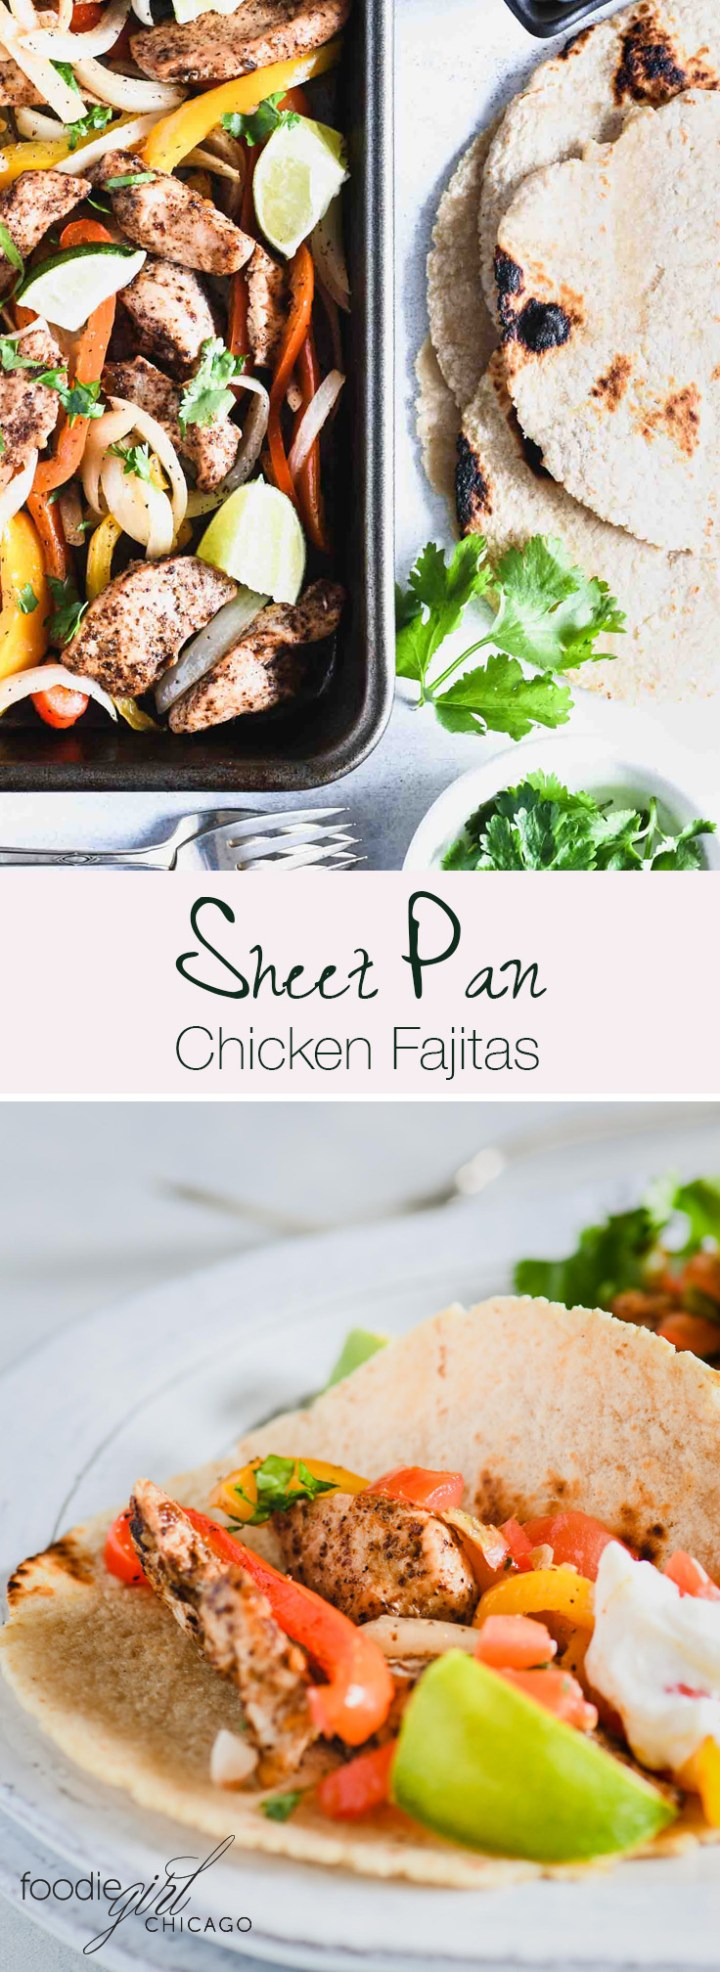 These sheet pan chicken fajitas are easy and healthy – what more could you ask for in a weeknight meal?!